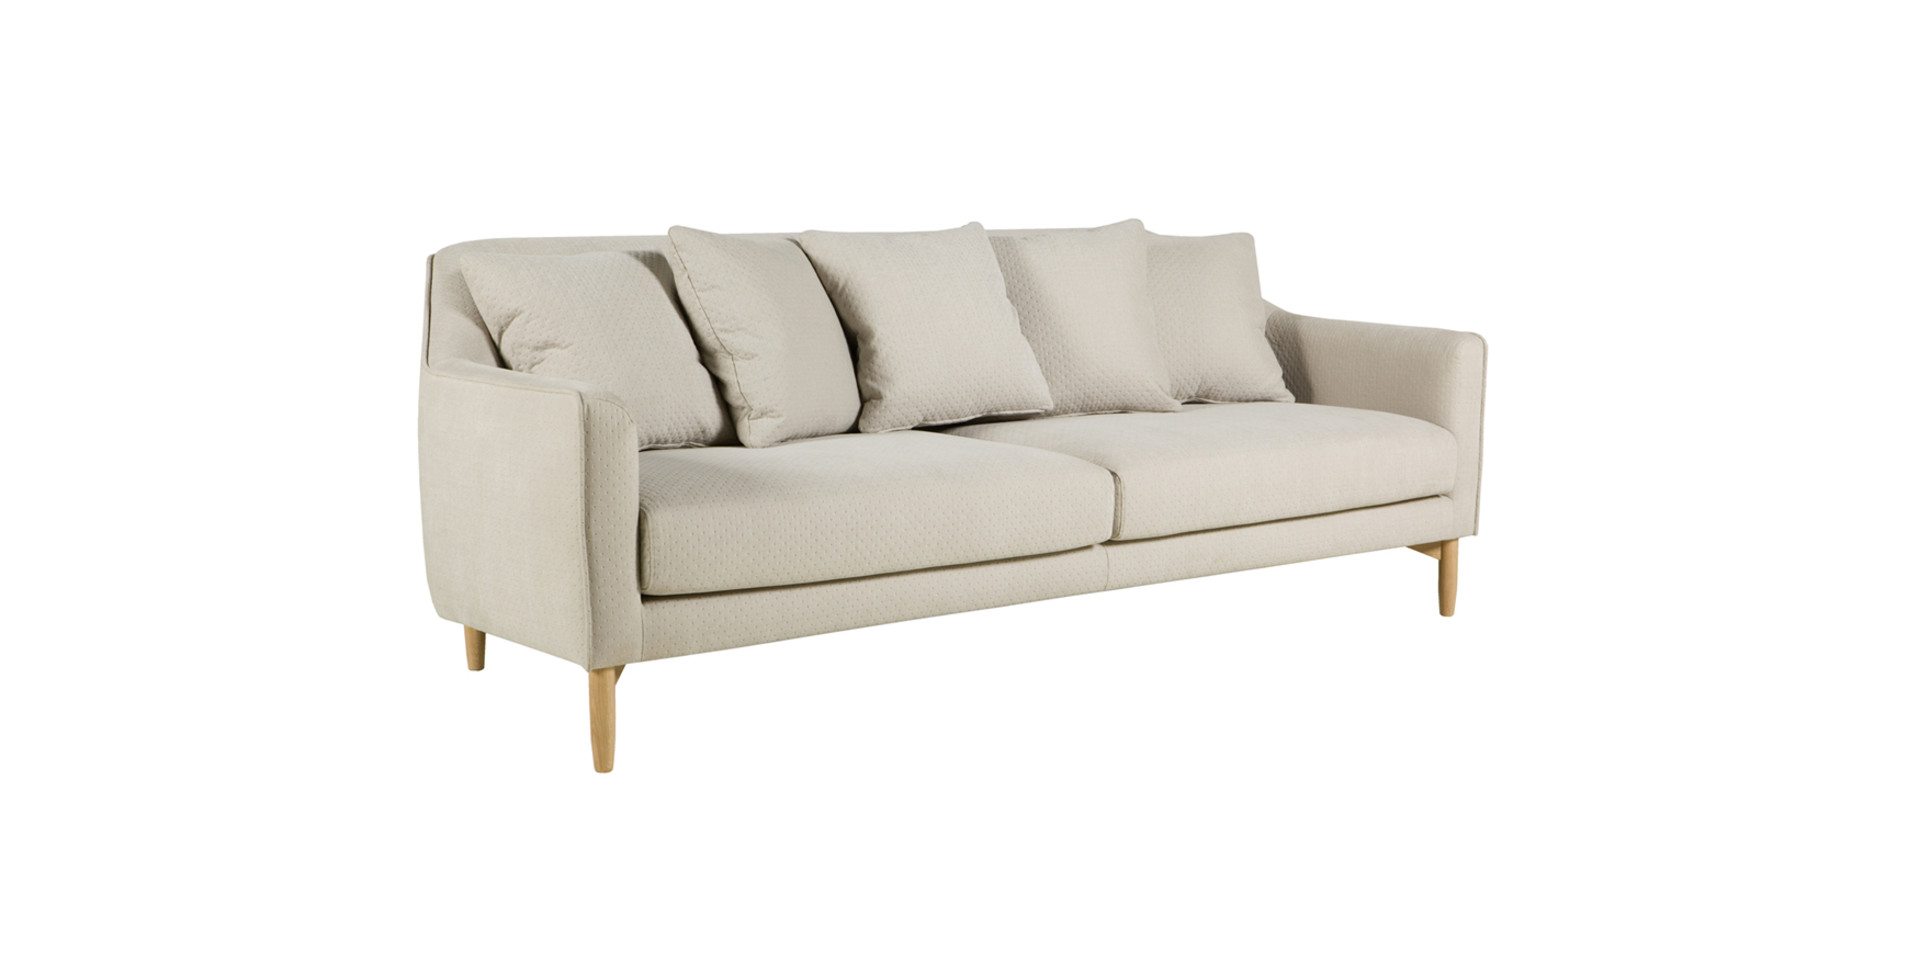 sits-ivy-canape-3seater_caleido3790_light_beige_perforated_2